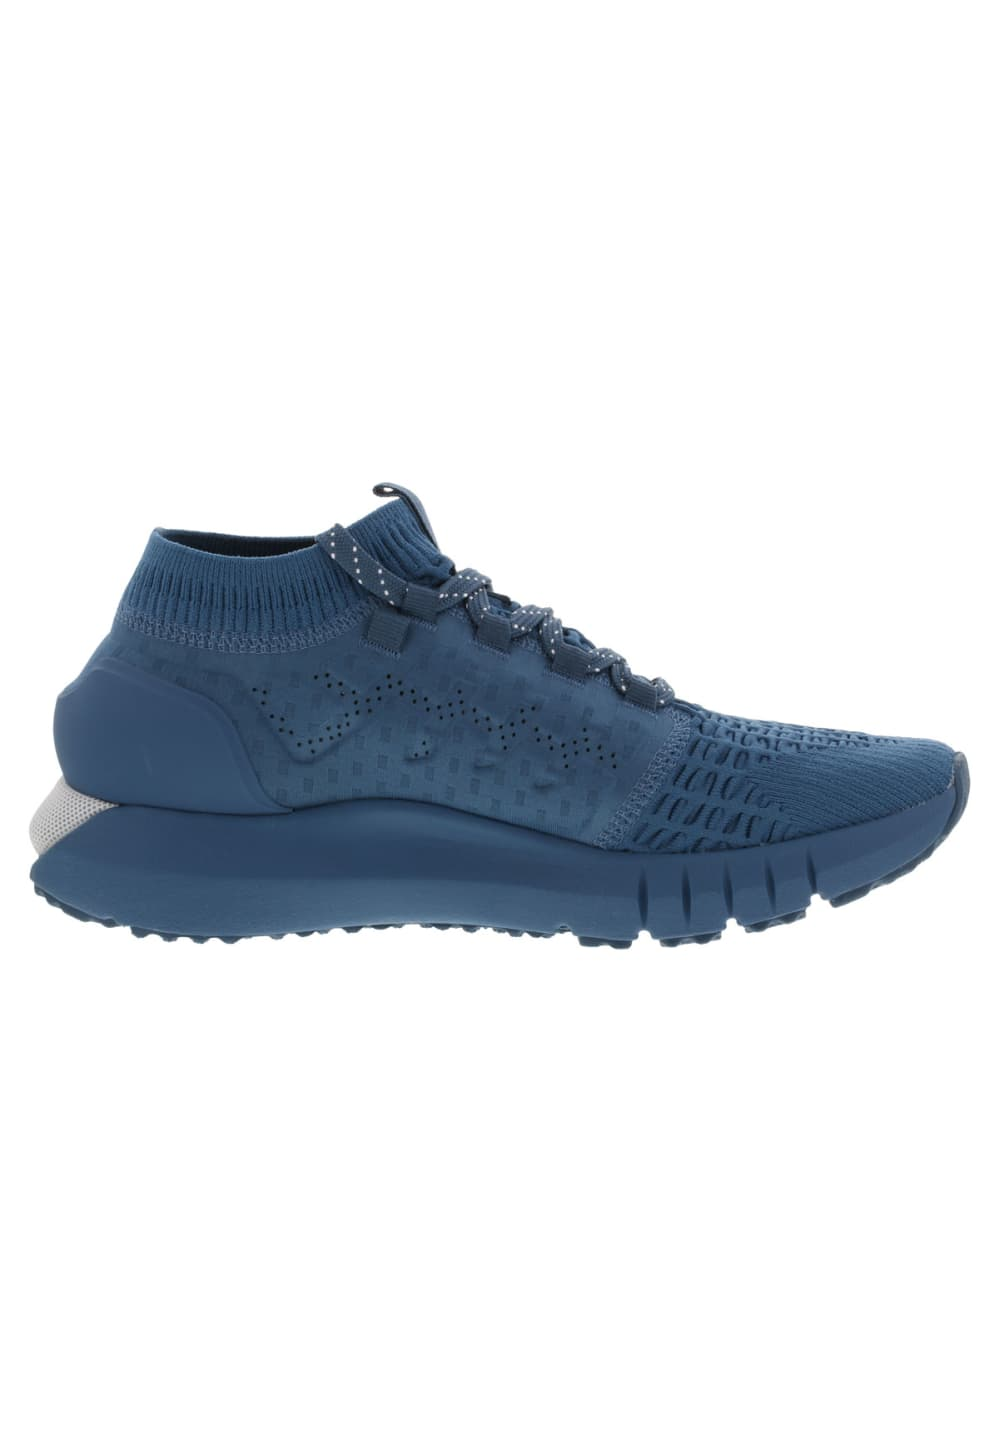 super popular 770be d78b0 Under Armour HOVR Phantom NC - Running shoes for Men - Blue